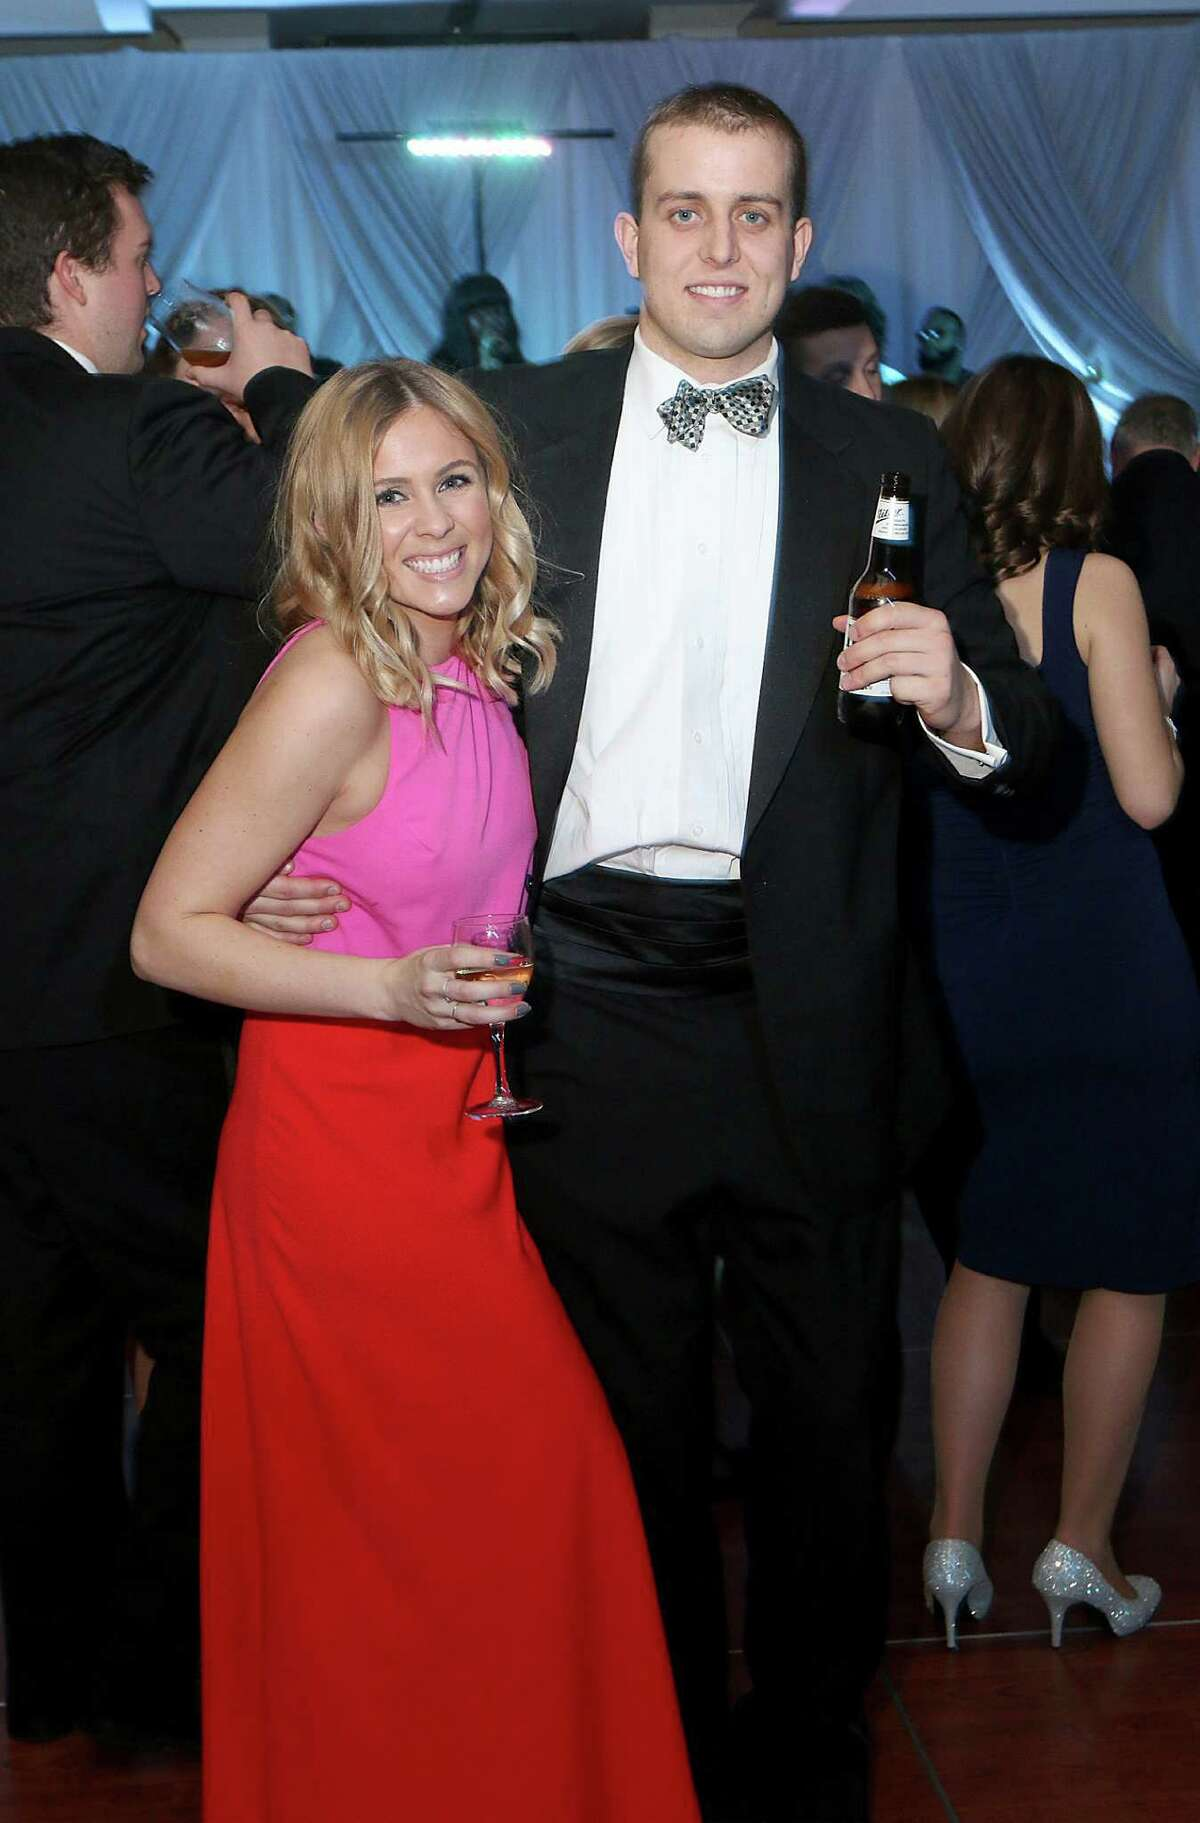 Were you Seen at the 2016 Jewels in the Night Gala at The Albany Marriott in Colonie on Saturday, Jan. 9, 2015? https://www.nehealth.com/Foundations/Northeast_Health_Foundation/Upcoming_Events/Jewels_in_the_Night_/